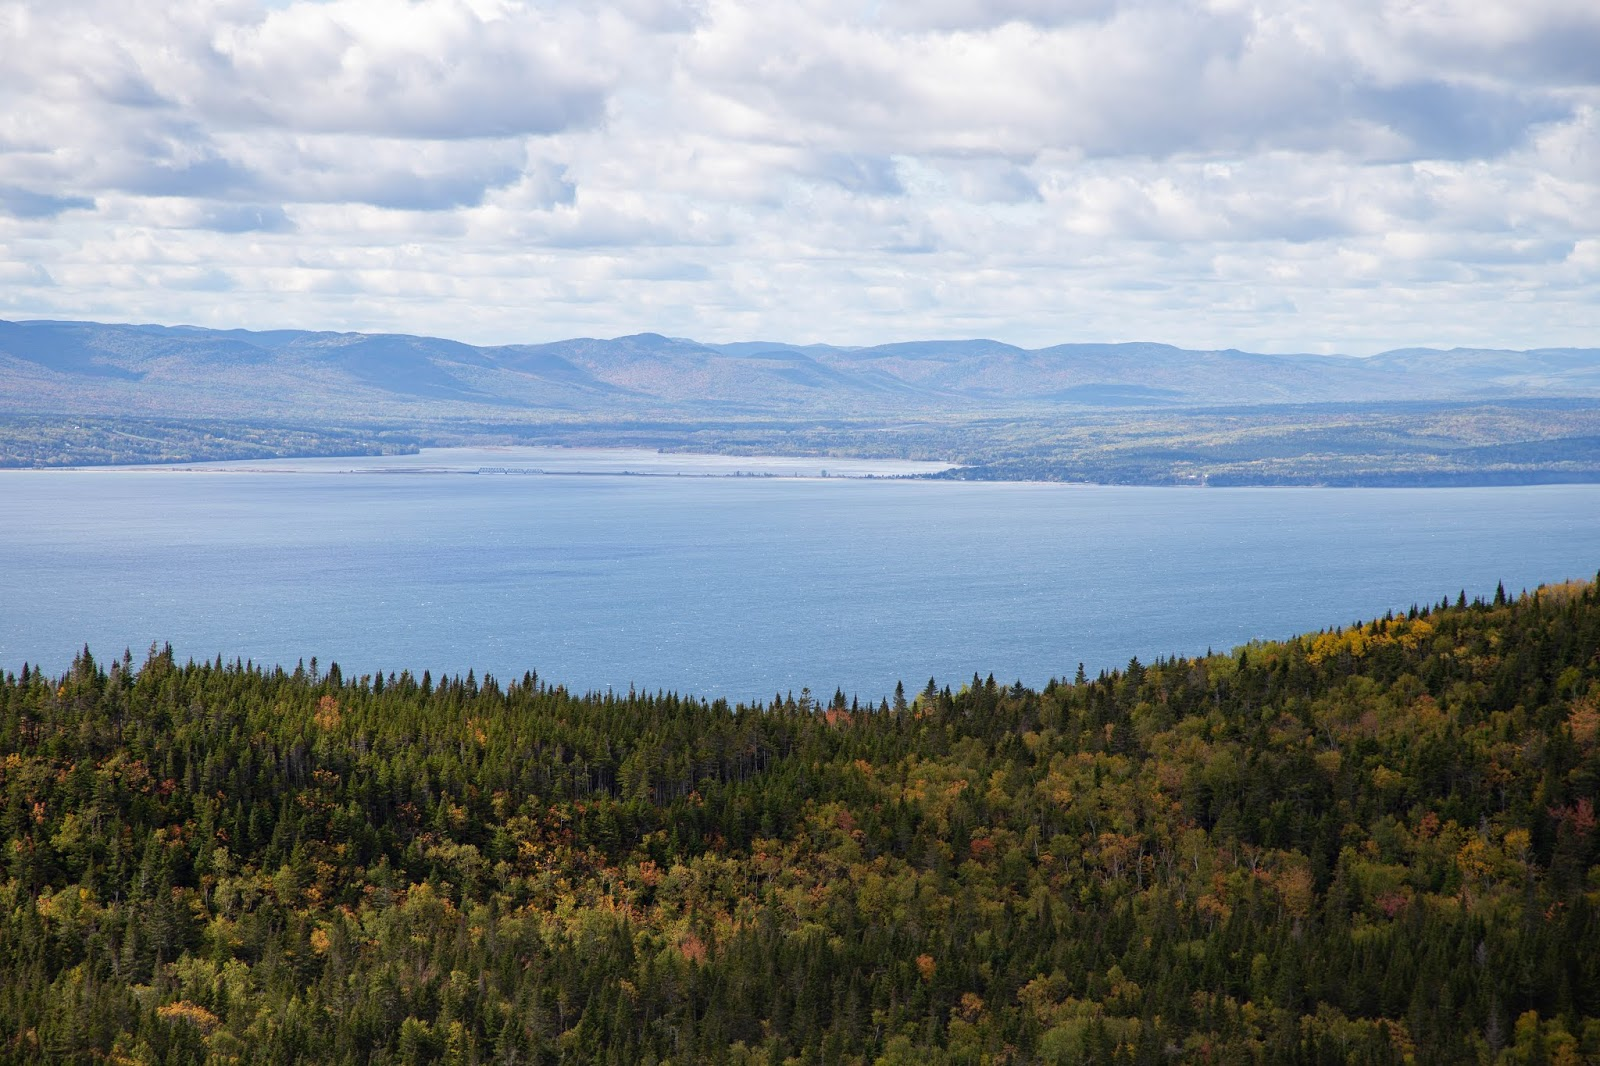 https://www.ldmailys.com/2019/11/parc-national-forillon-gaspesie.html